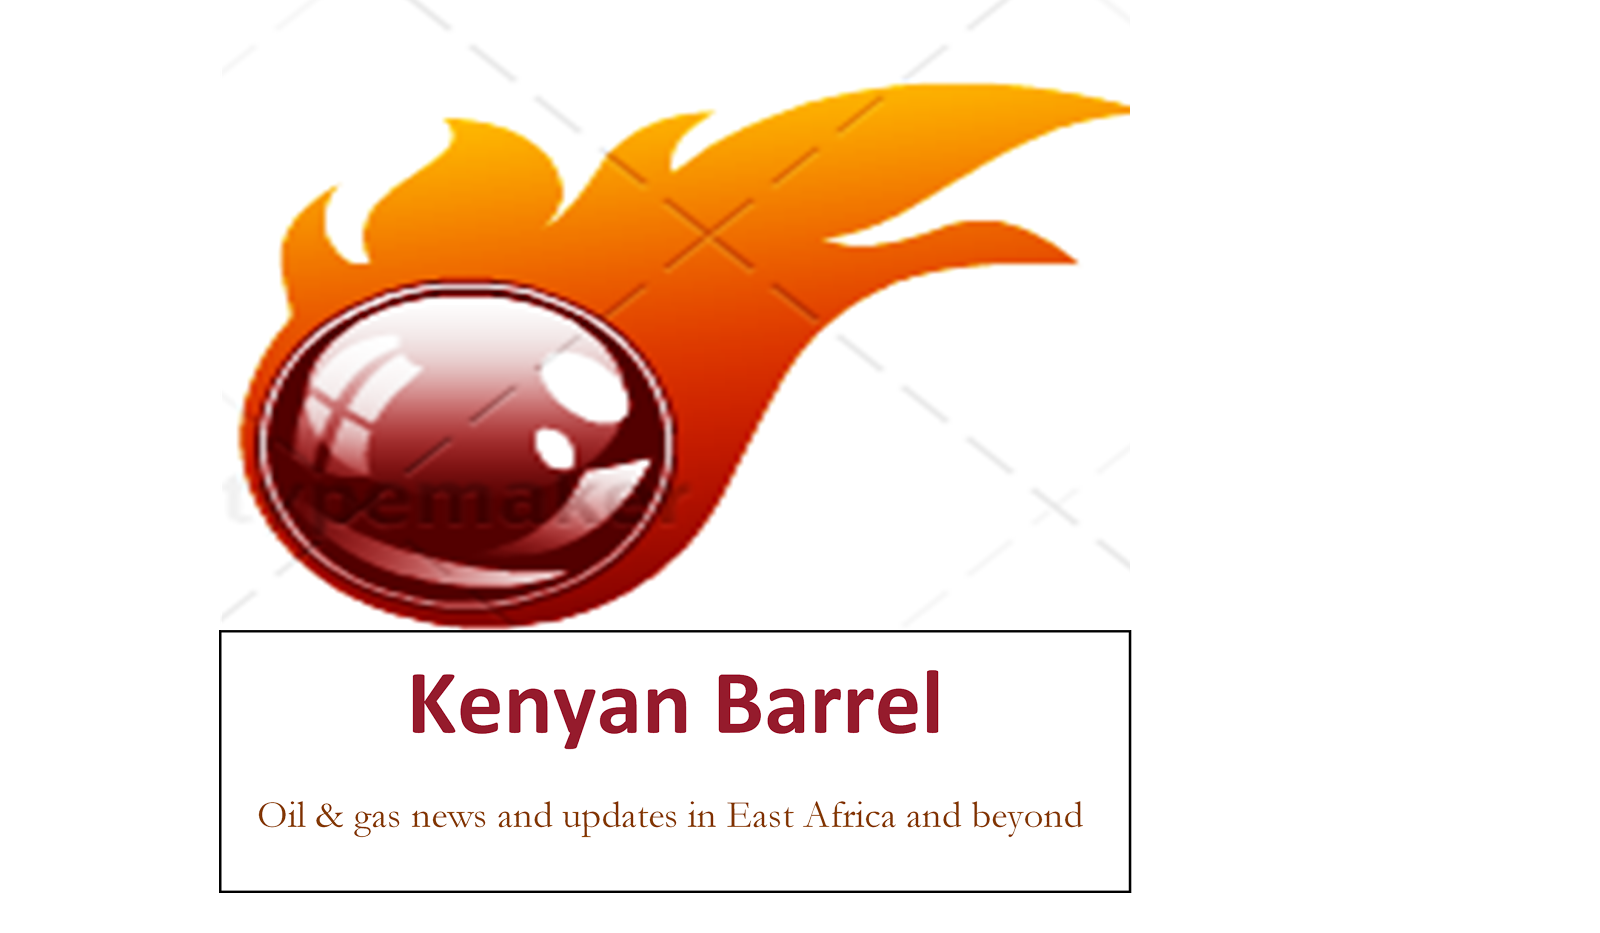 Oil clipart petroleum barrel. Kenyan kenya in proposal